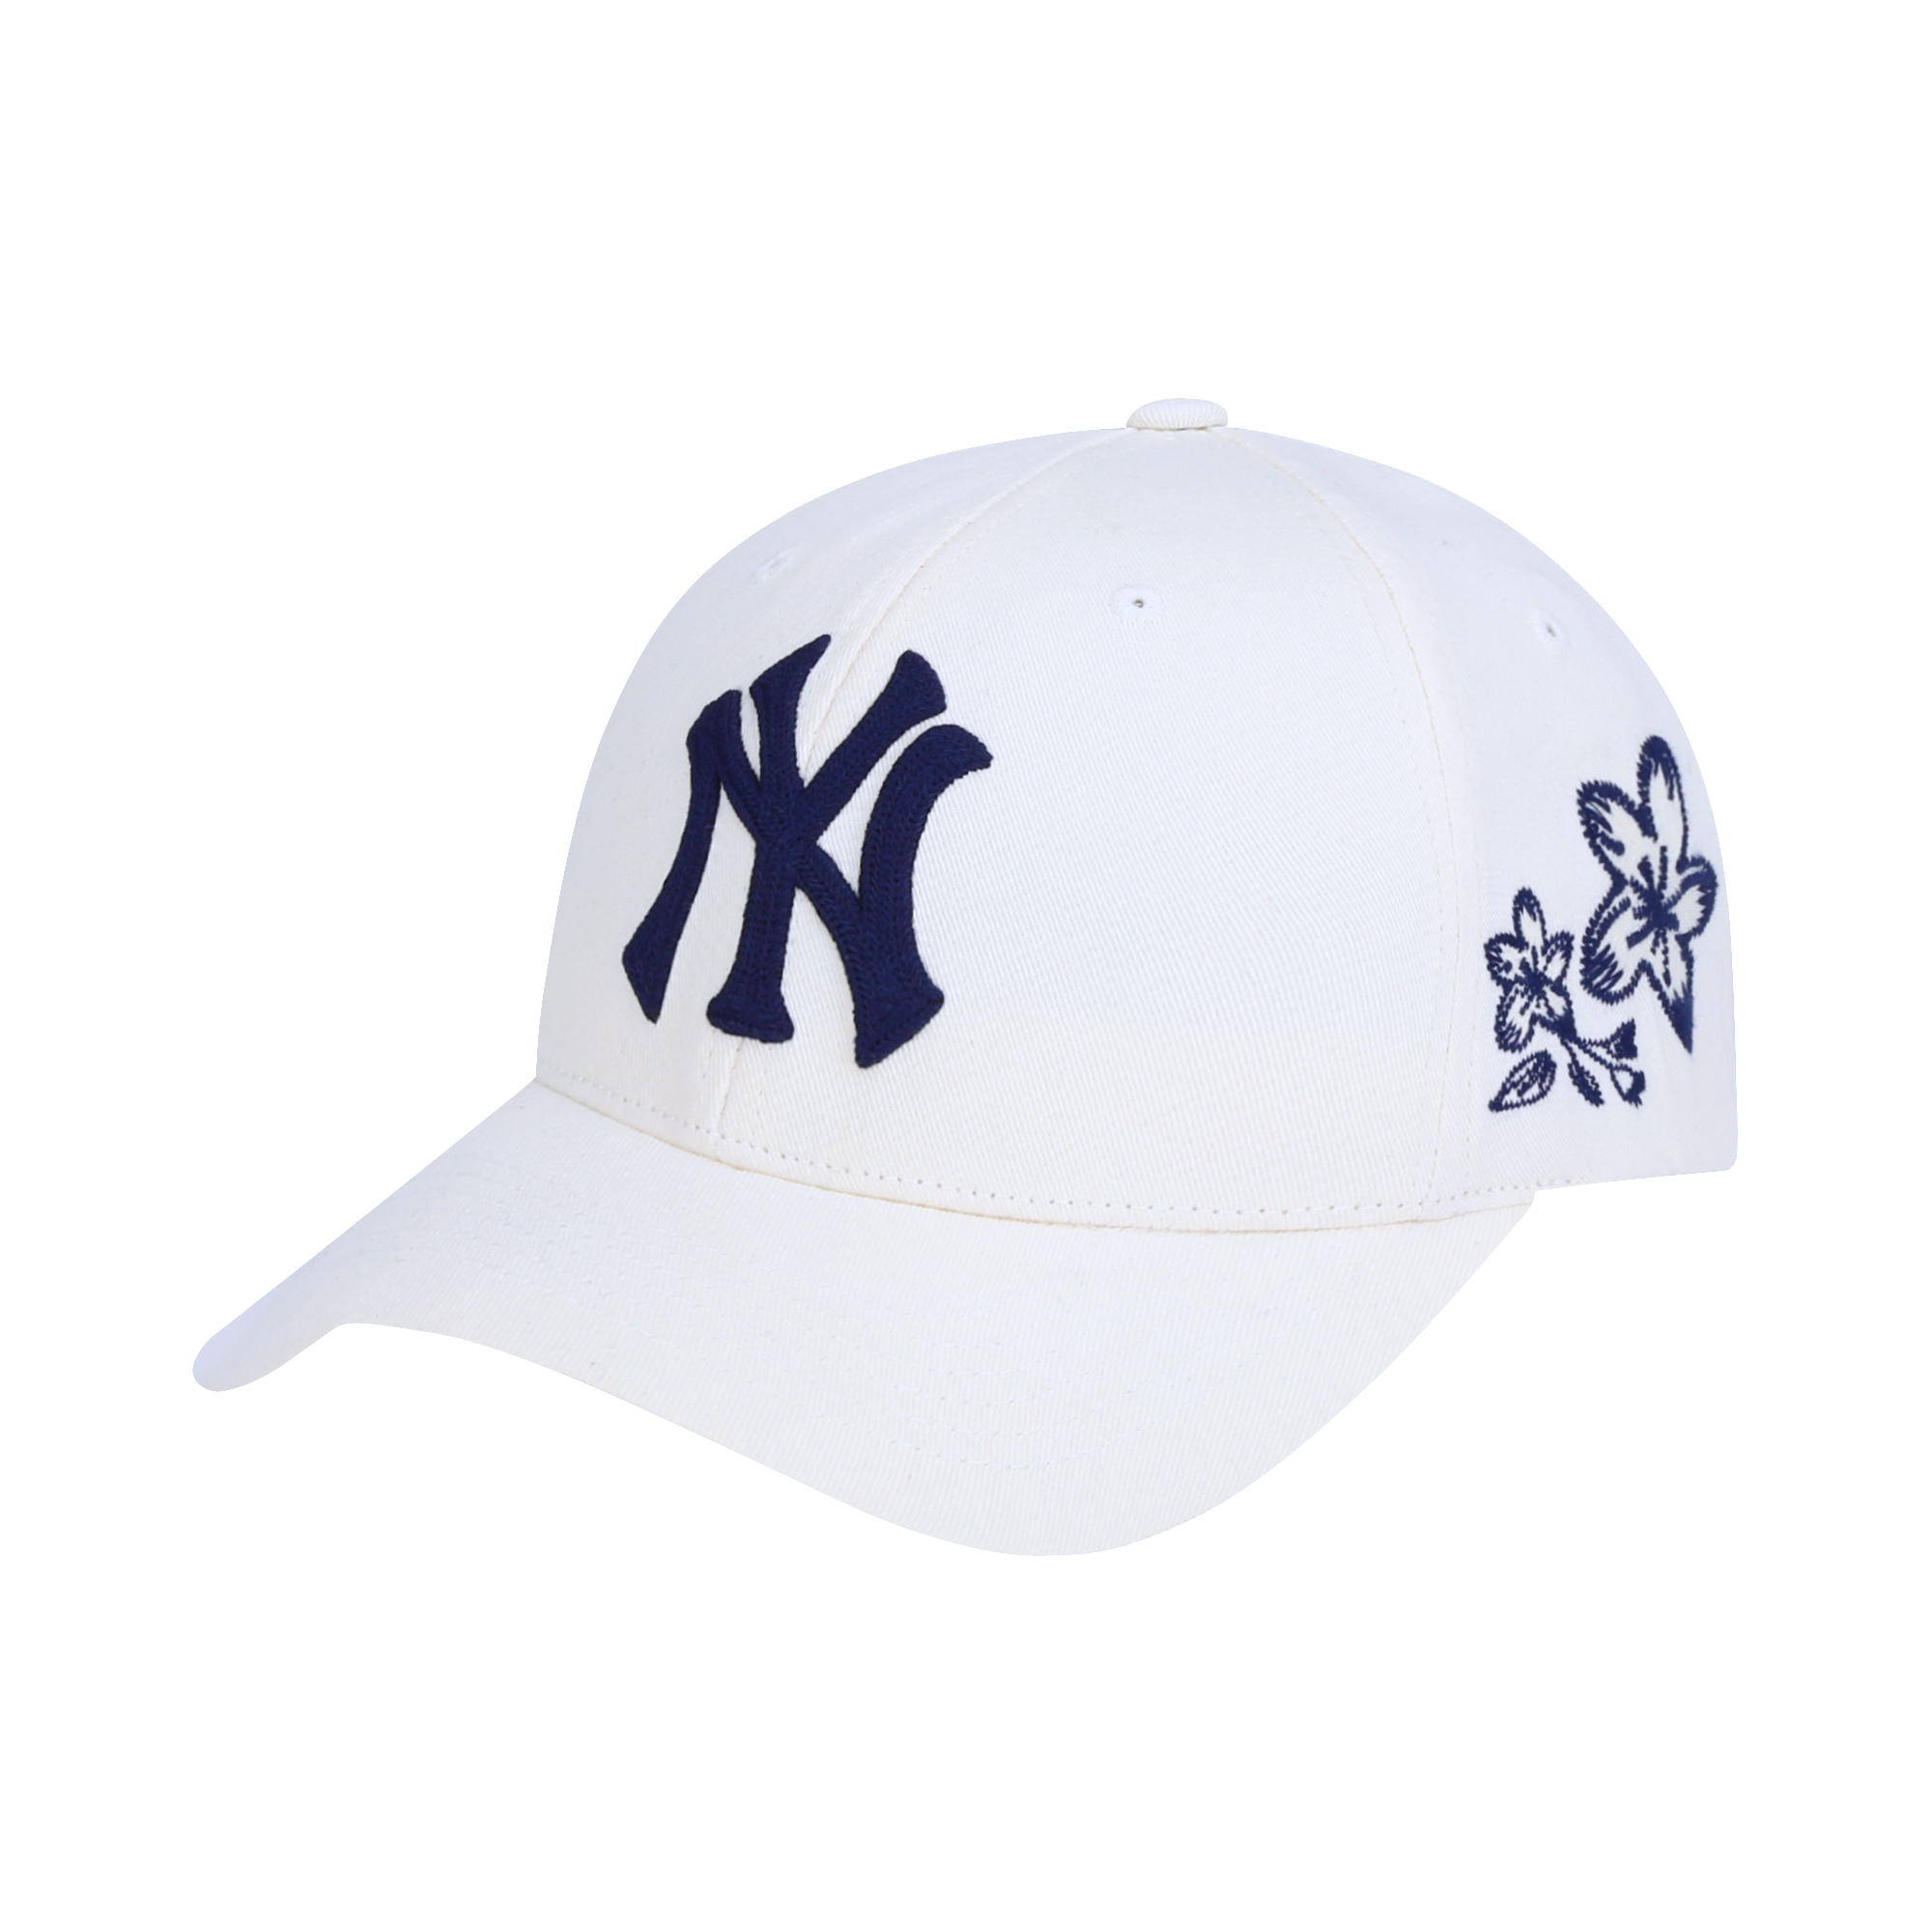 NEW YORK YANKEES JOUY ADJUSTABLE CAP